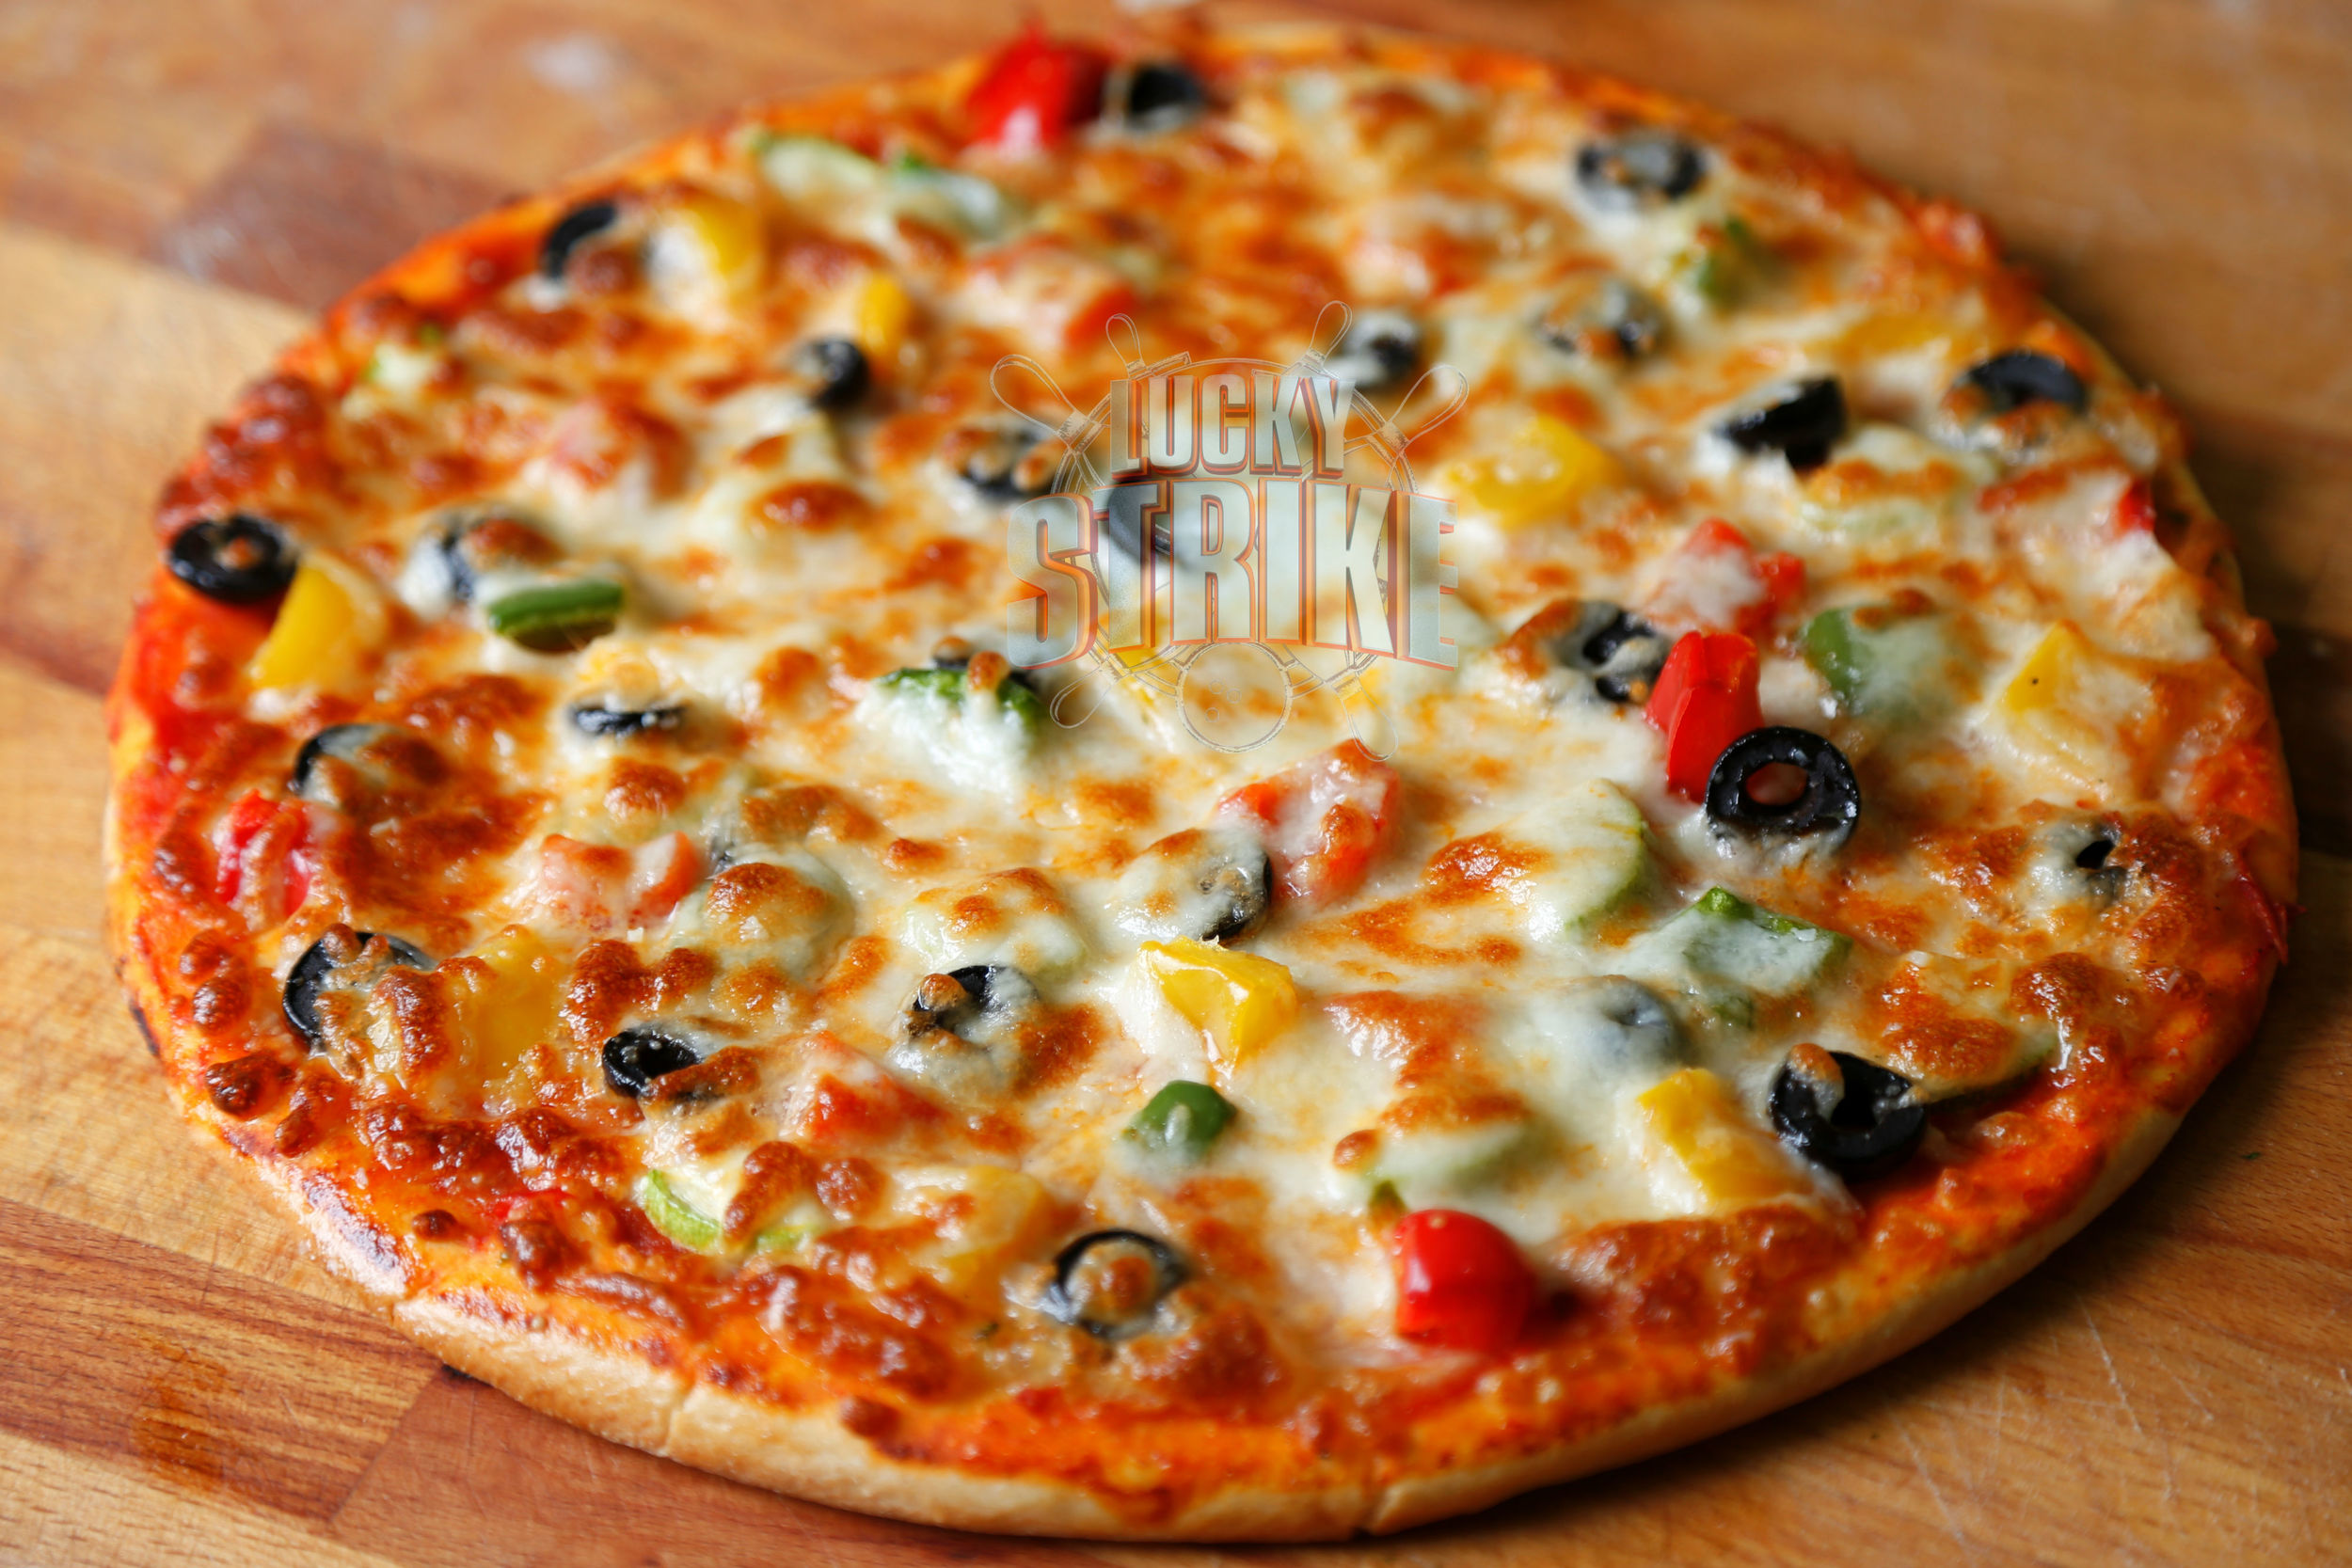 VEGETARIAN PIZZA                         38/49    Freshly homemade dough marinated with tomato. black olives, green & red capsicum, zucchini   with melted mozzarella cheese & I  talian sauce